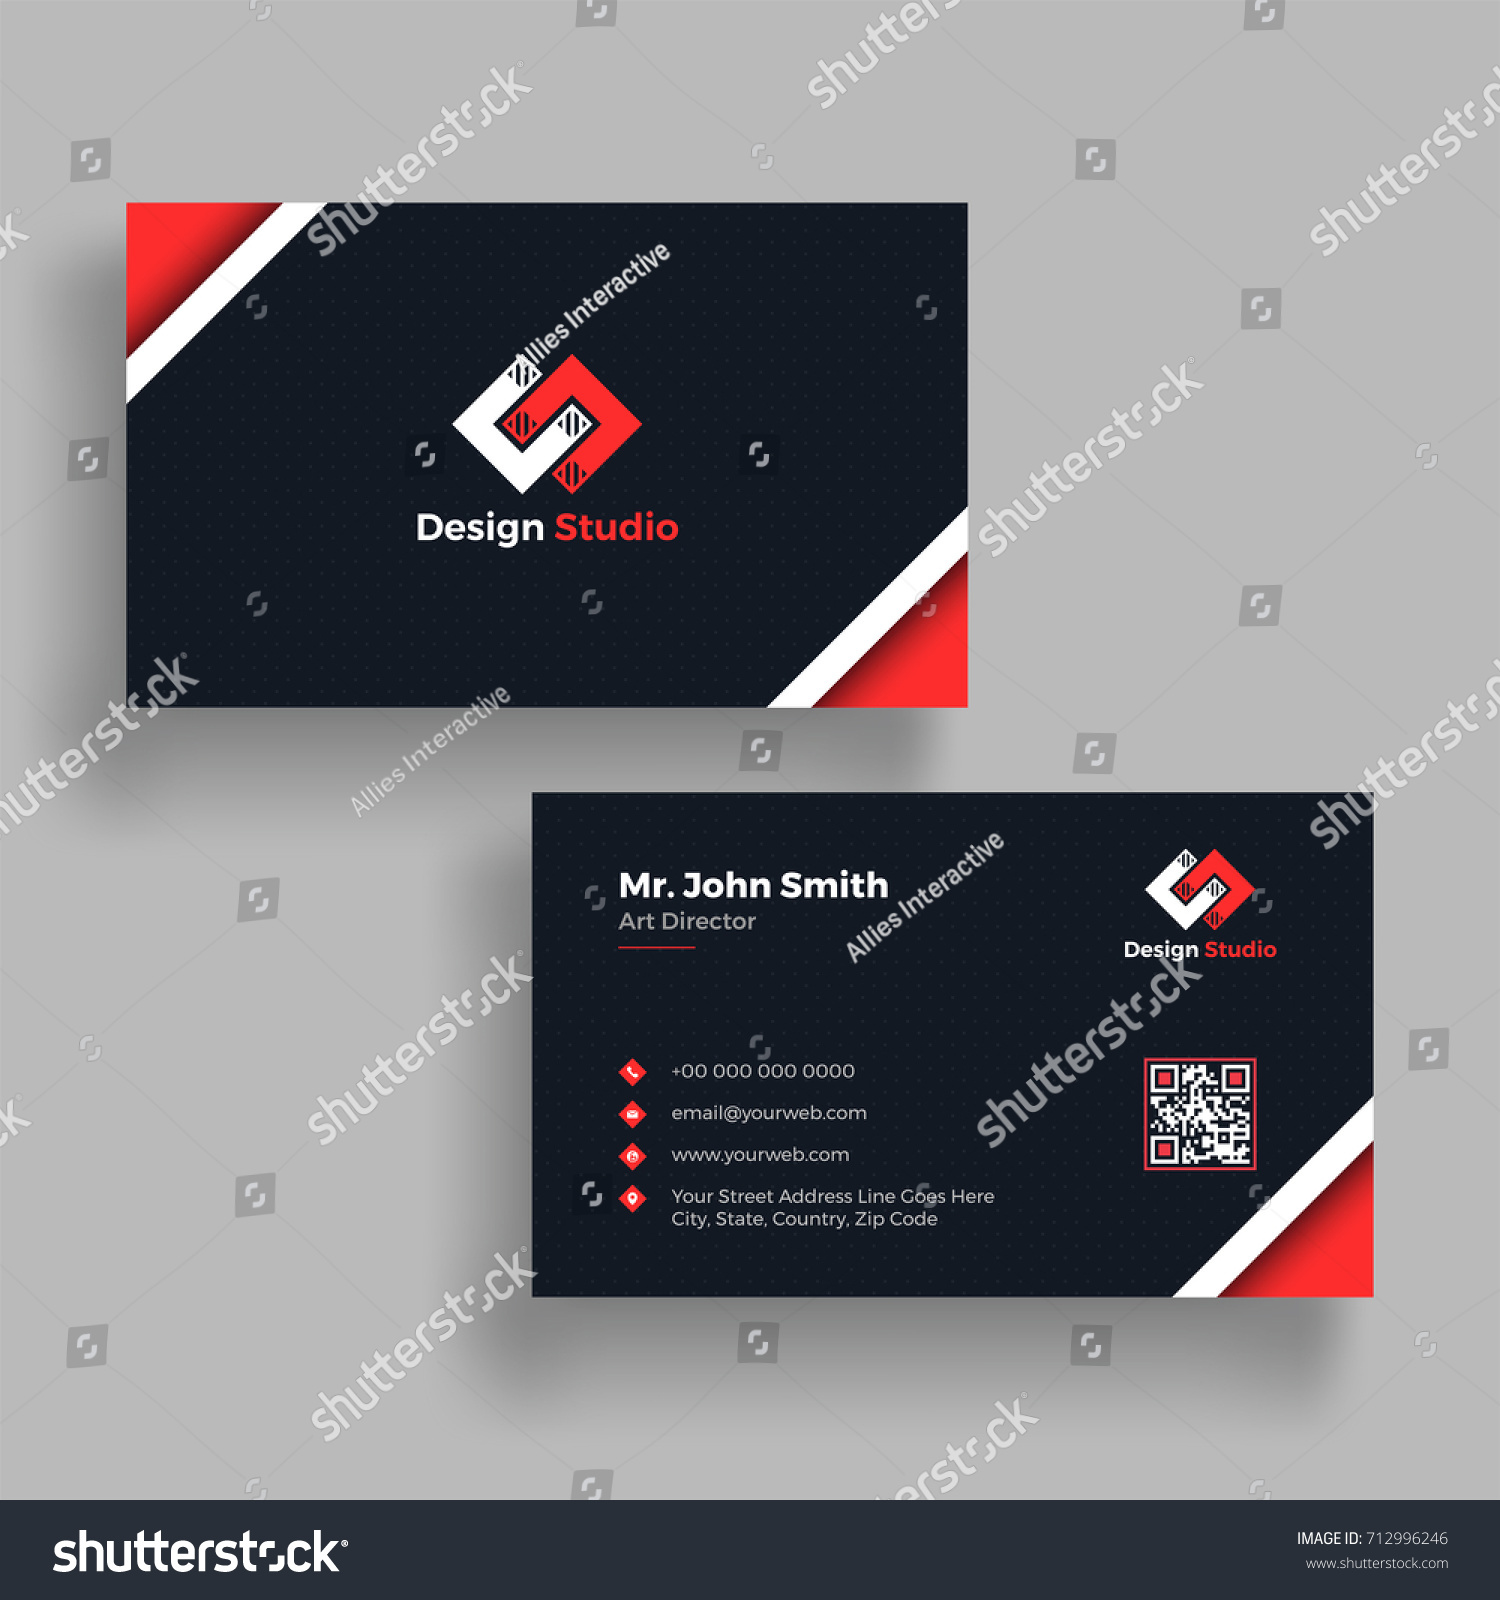 Business cards with appointment on back gallery free business cards business card backs images free business cards business cards with appointment on back choice image free magicingreecefo Image collections